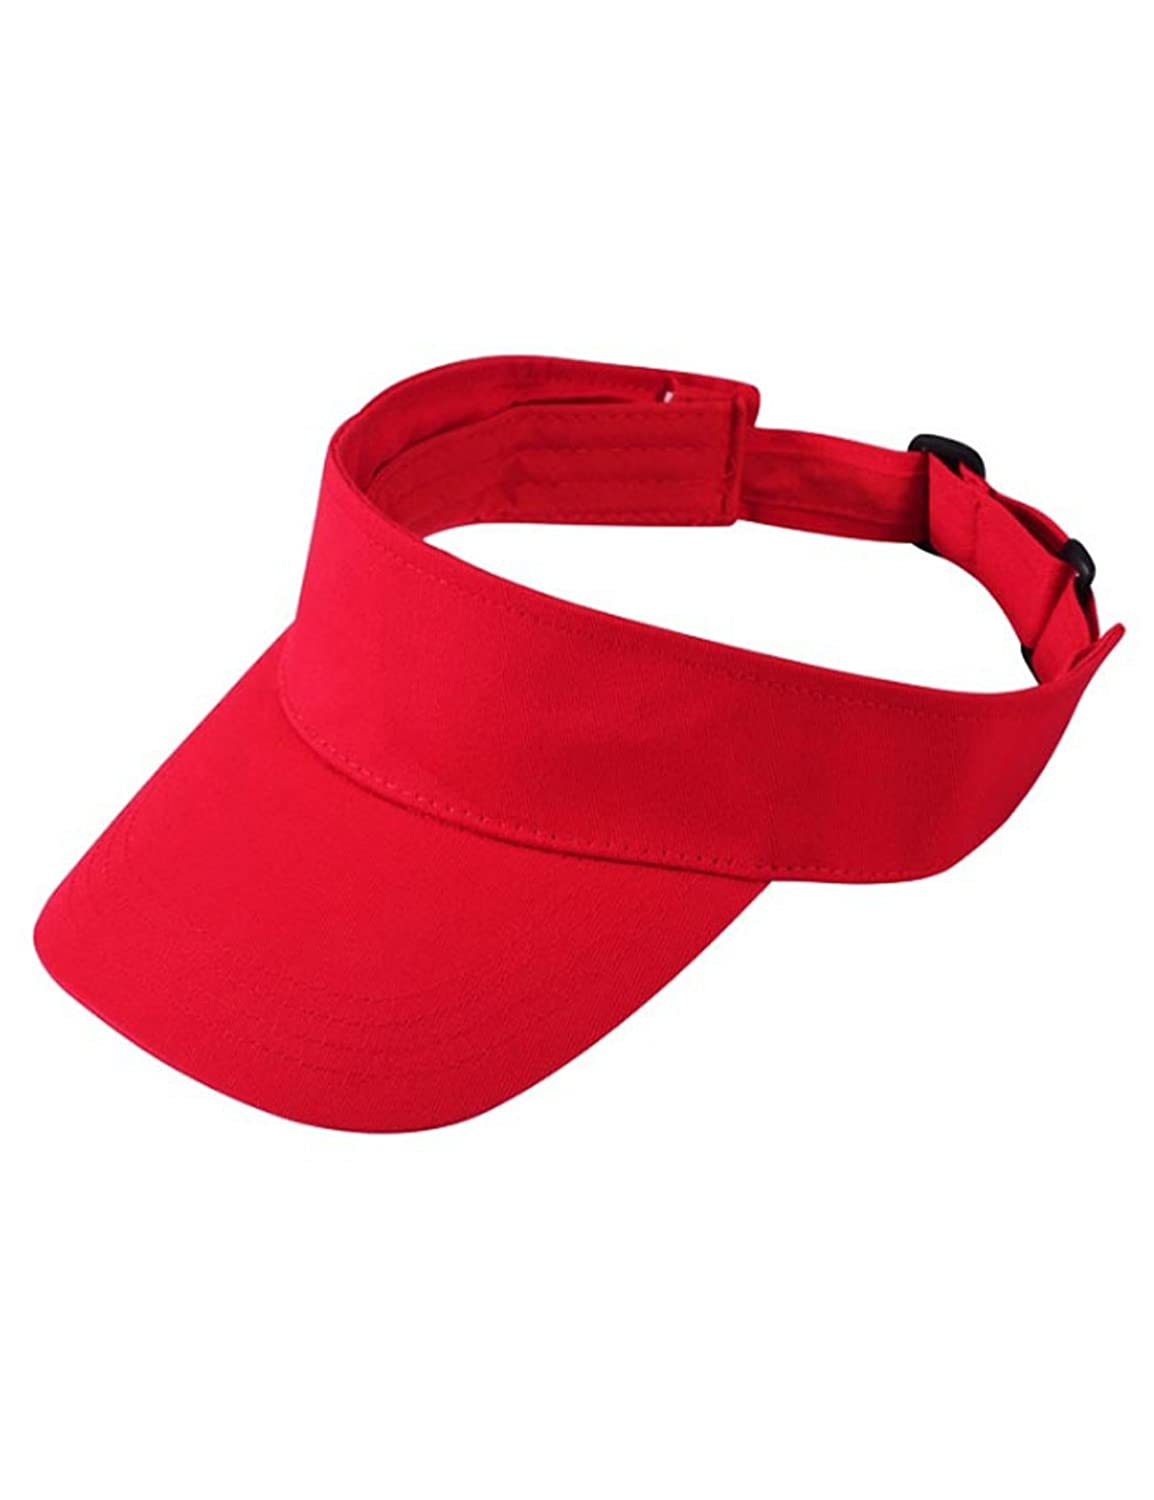 Bestgift Womens Mens Solid Colour Cotton Fashion Sports Hat Ajustable Sun Visors